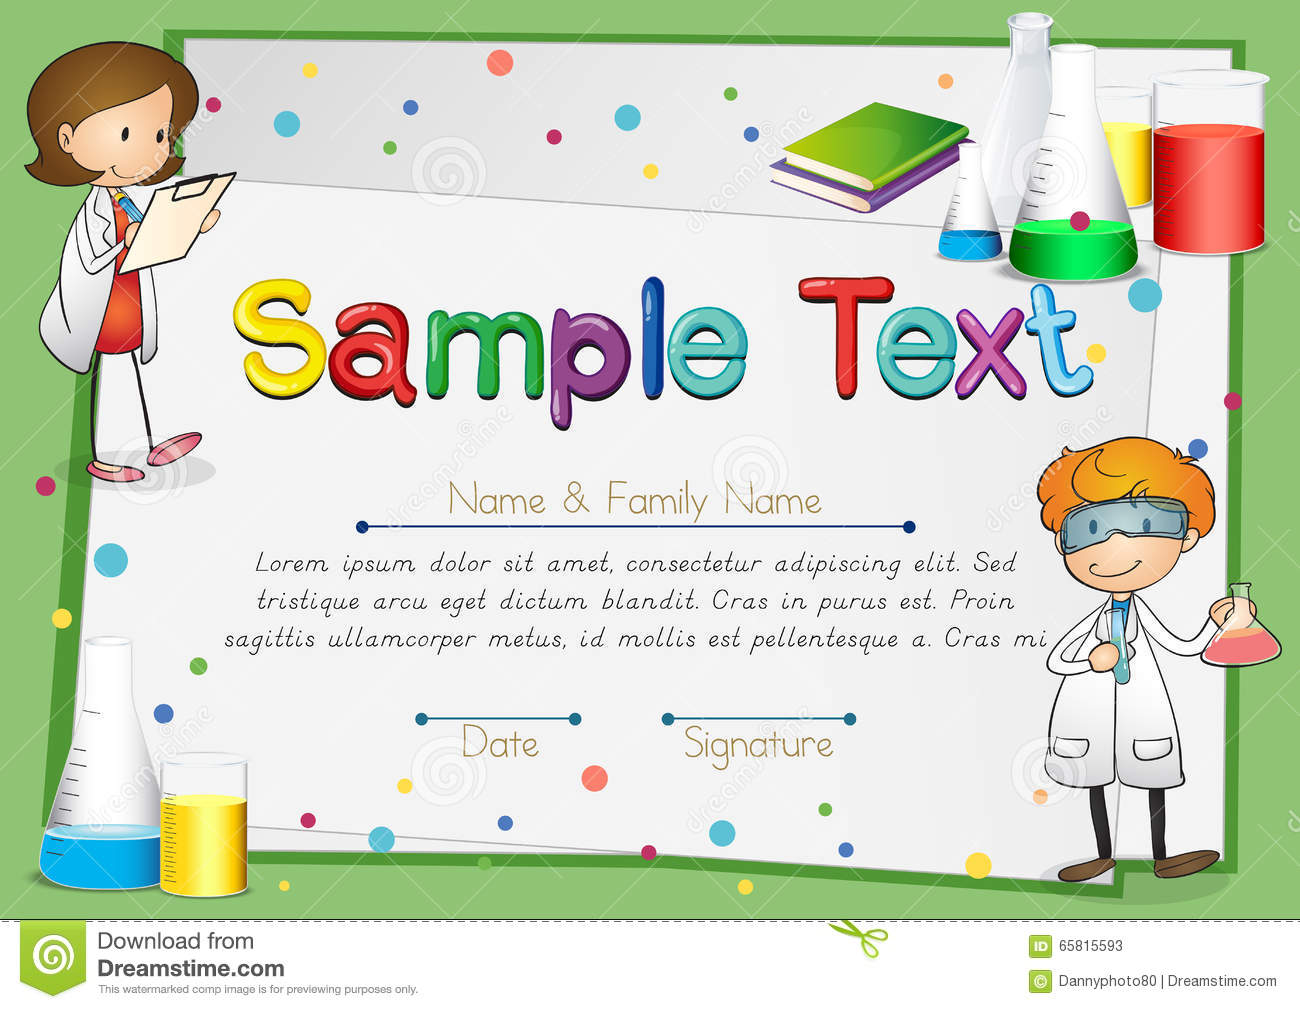 Science certificate templates choice image templates example science certificate templates images templates example free download science certificate templates fieldstation science certificate templates alramifo yadclub Gallery